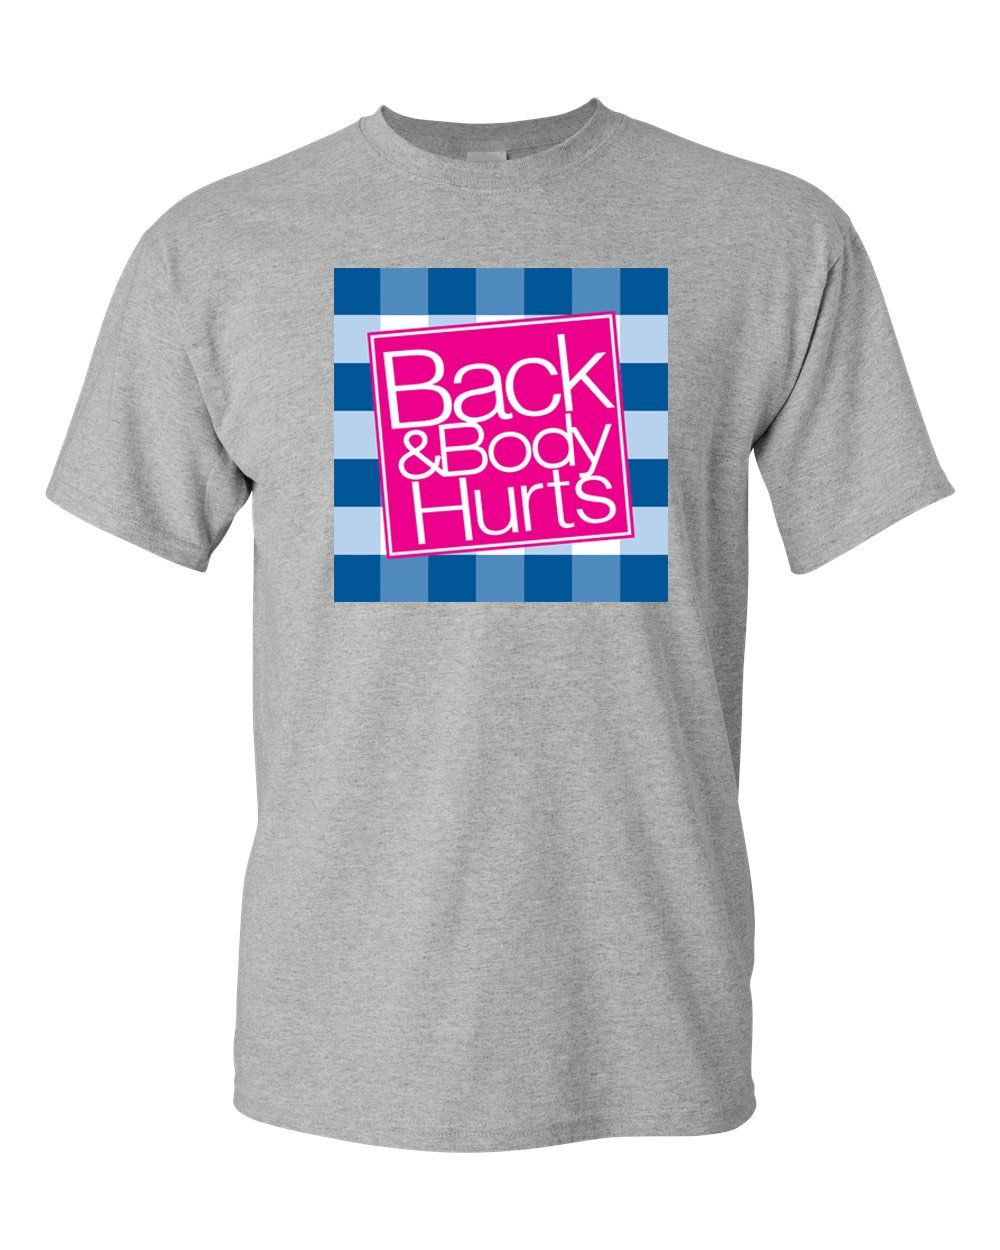 Back and Body Hurts Mens Fashion Funny Adult Humor Graphic Tee T-Shirt